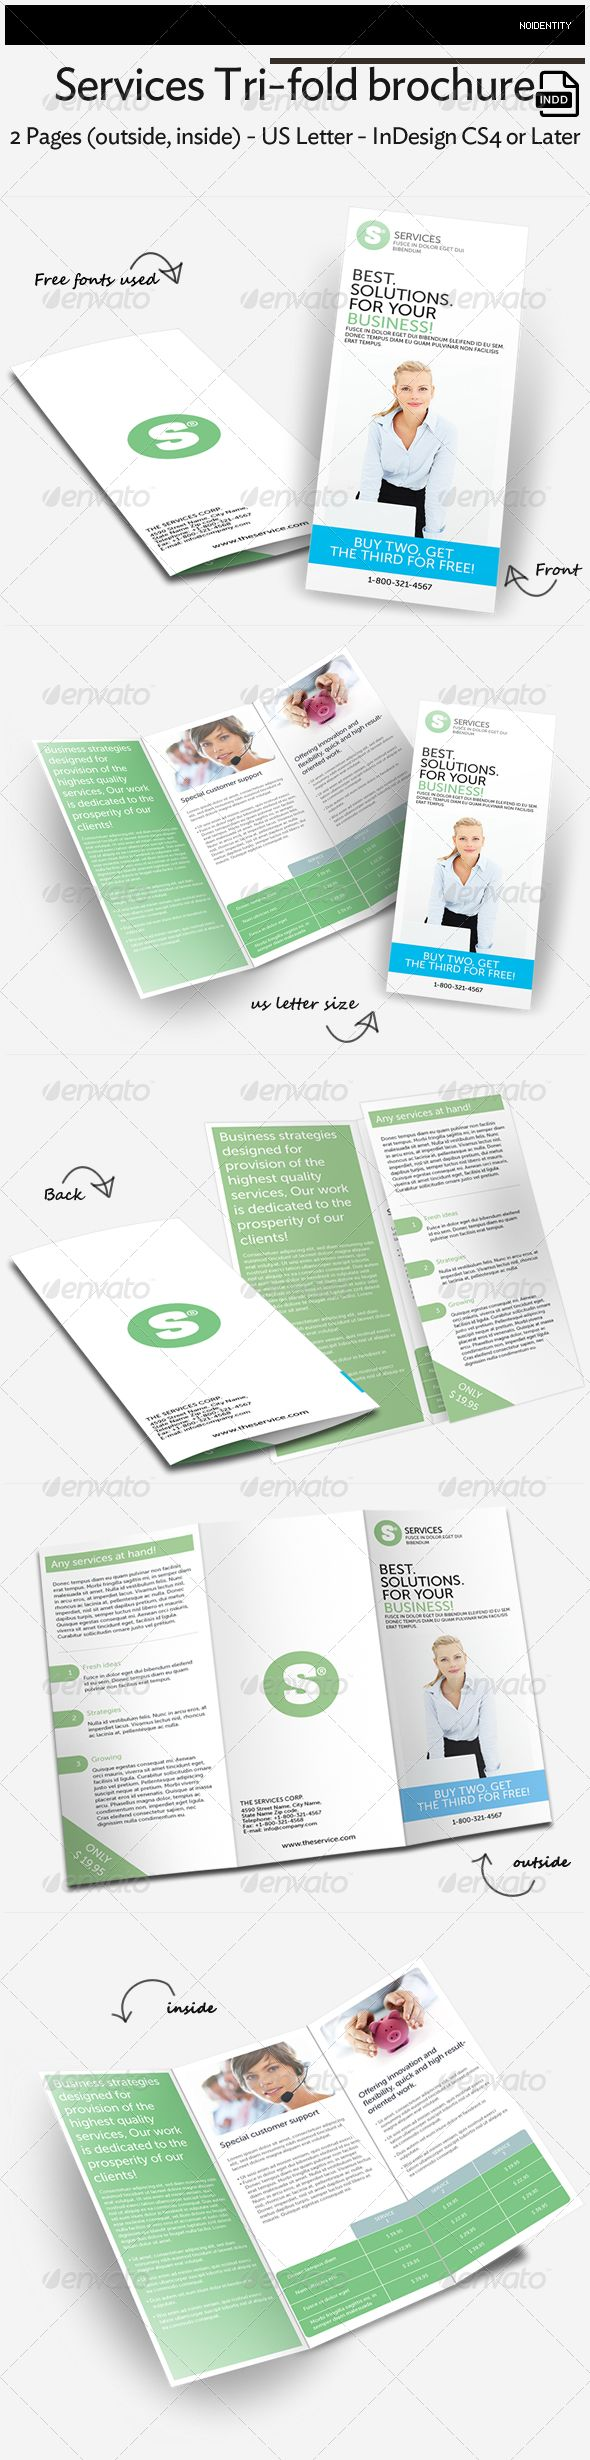 17 best images about brochure inspiration on pinterest for Tri fold brochure template indesign cs6